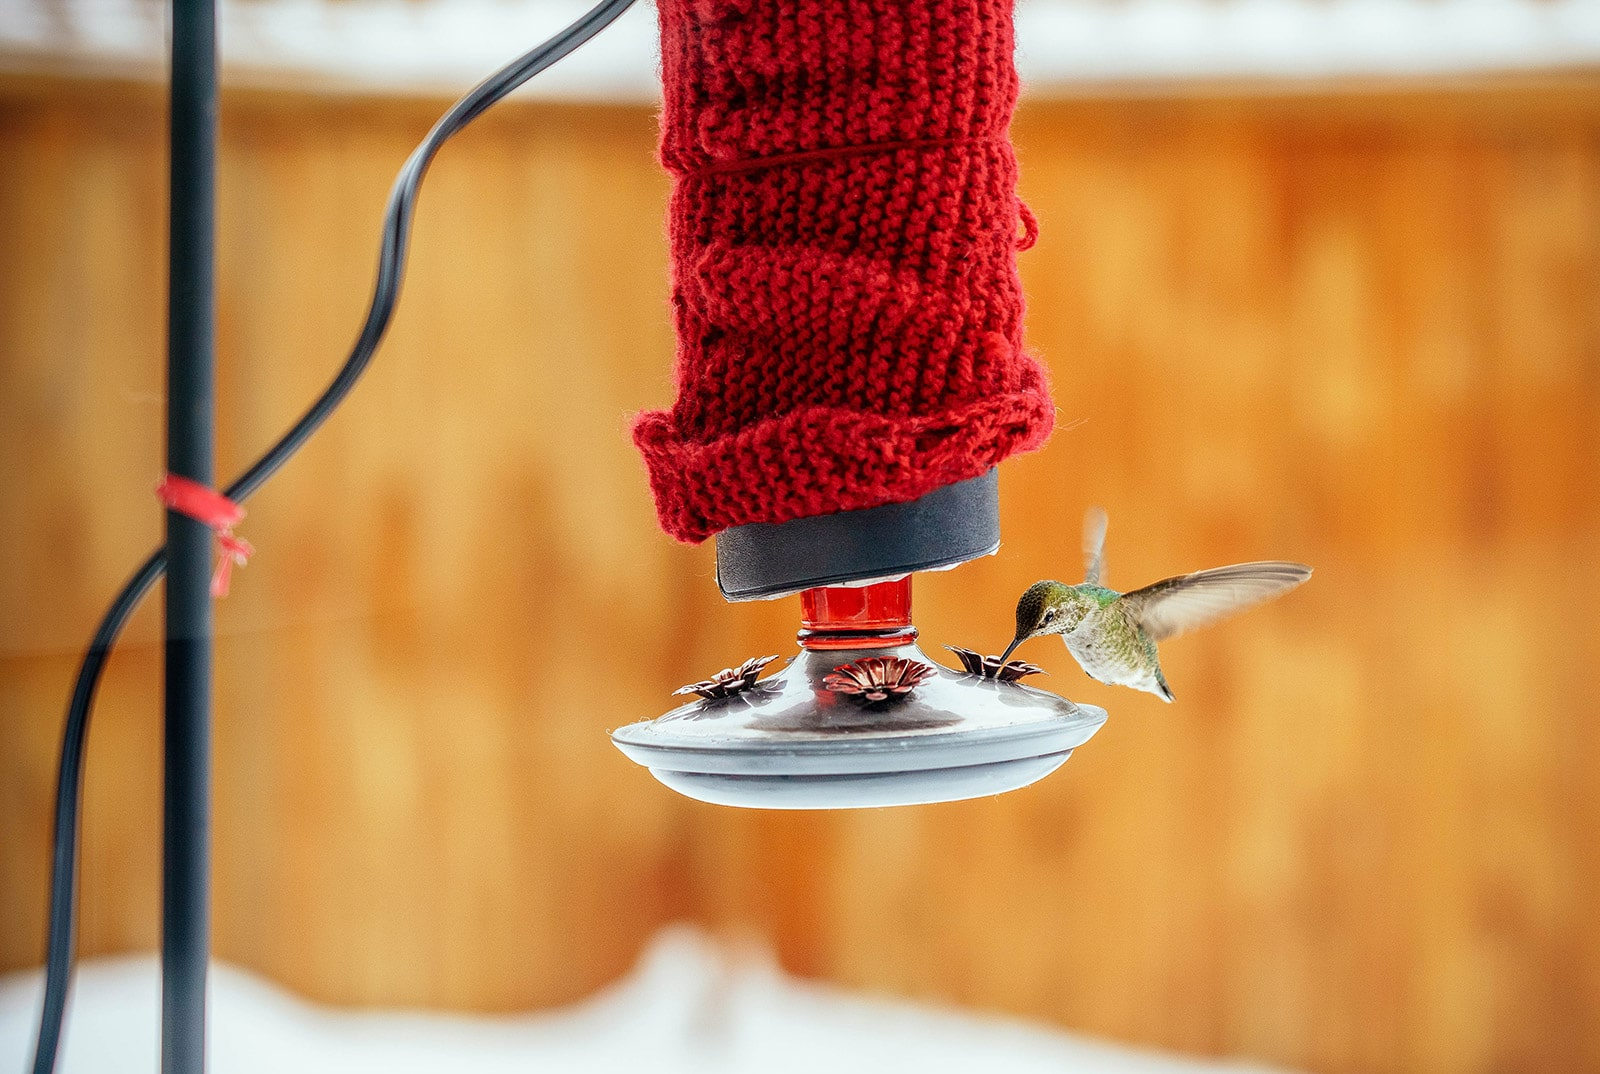 Hummingbird feeder in winter, wrapped in red knit sweater for insulation